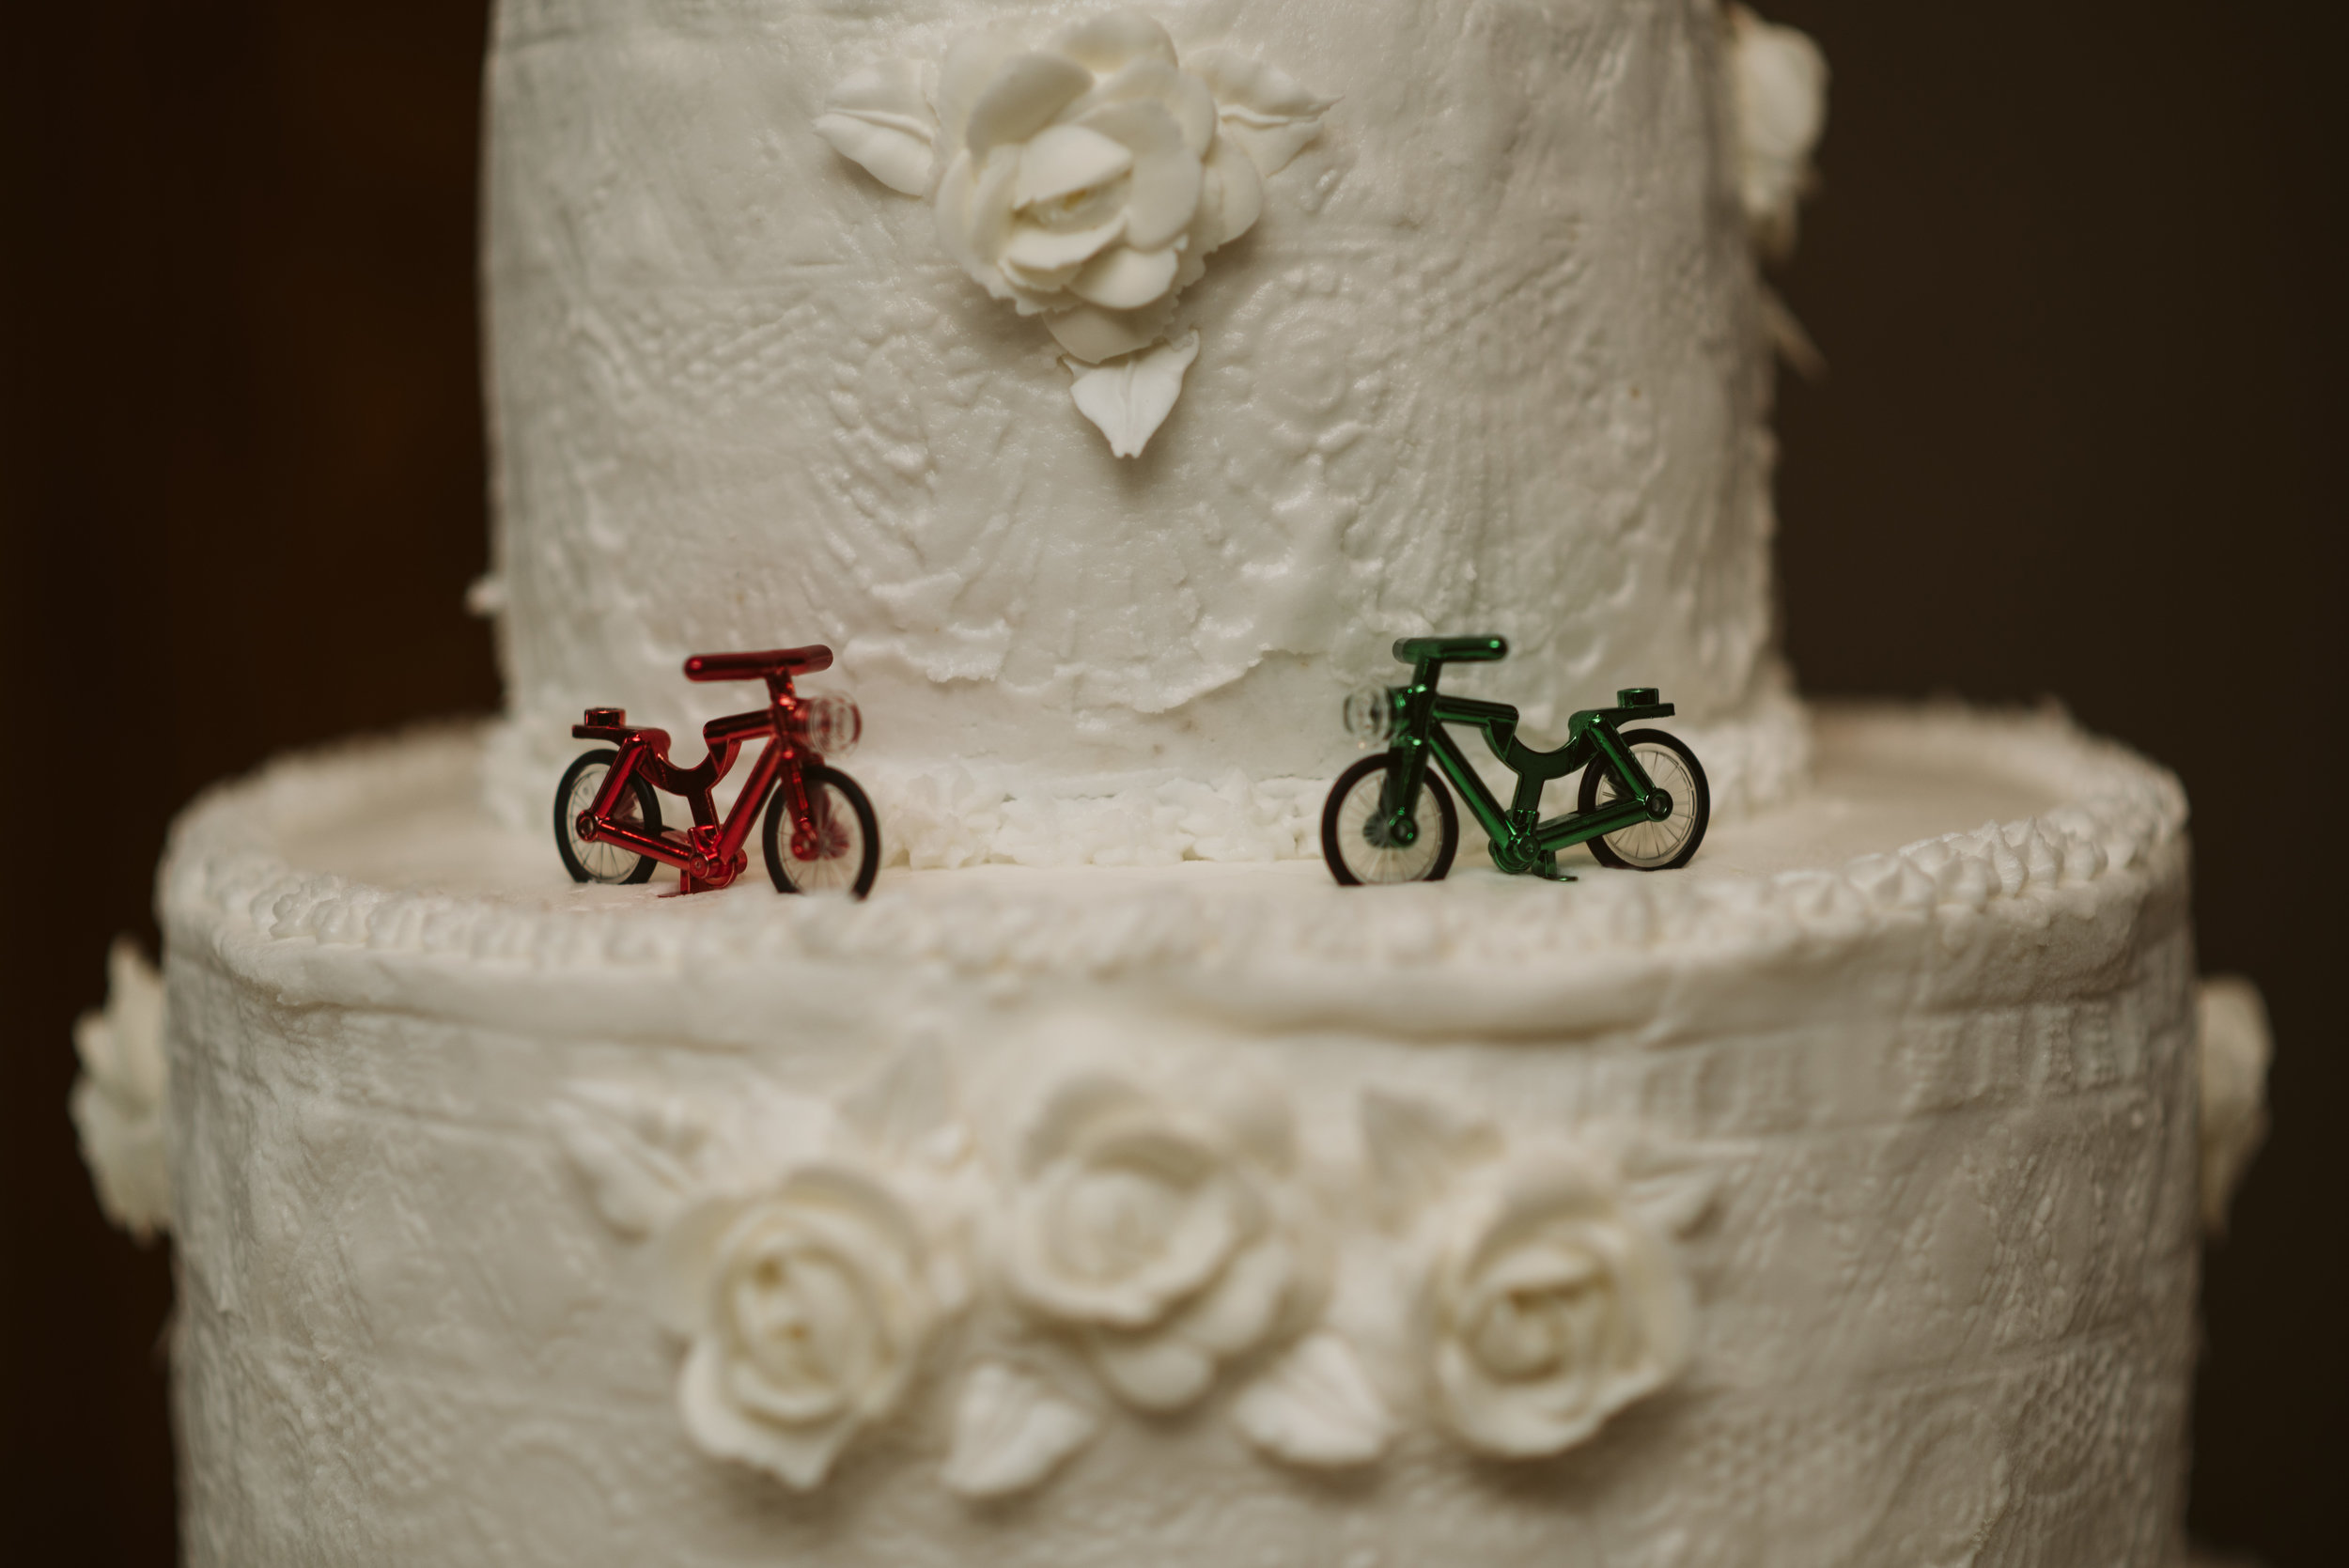 wedding cake with toy bicycles